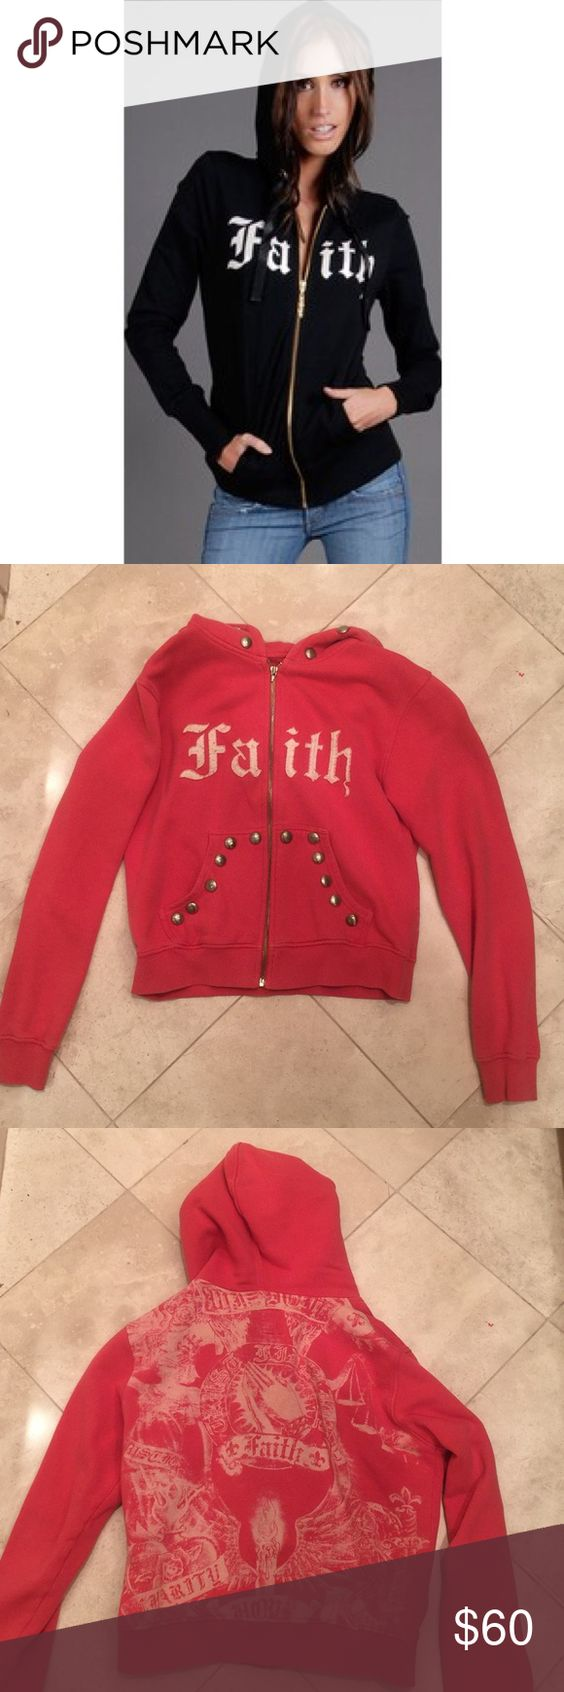 Faith Connexion Studded Red Zip Hoodie French Connexion Studded Zip Hoodie! Pre-owned sweatshirt in good condition- the decorative clasp on the zipper is missing (pictured). Sweater is fully usable and able to zip, the large decorative clasp is just missing. Contact me for more details/pictures if interested. Fits true to size and is very comfy! Faith Connexion Sweaters